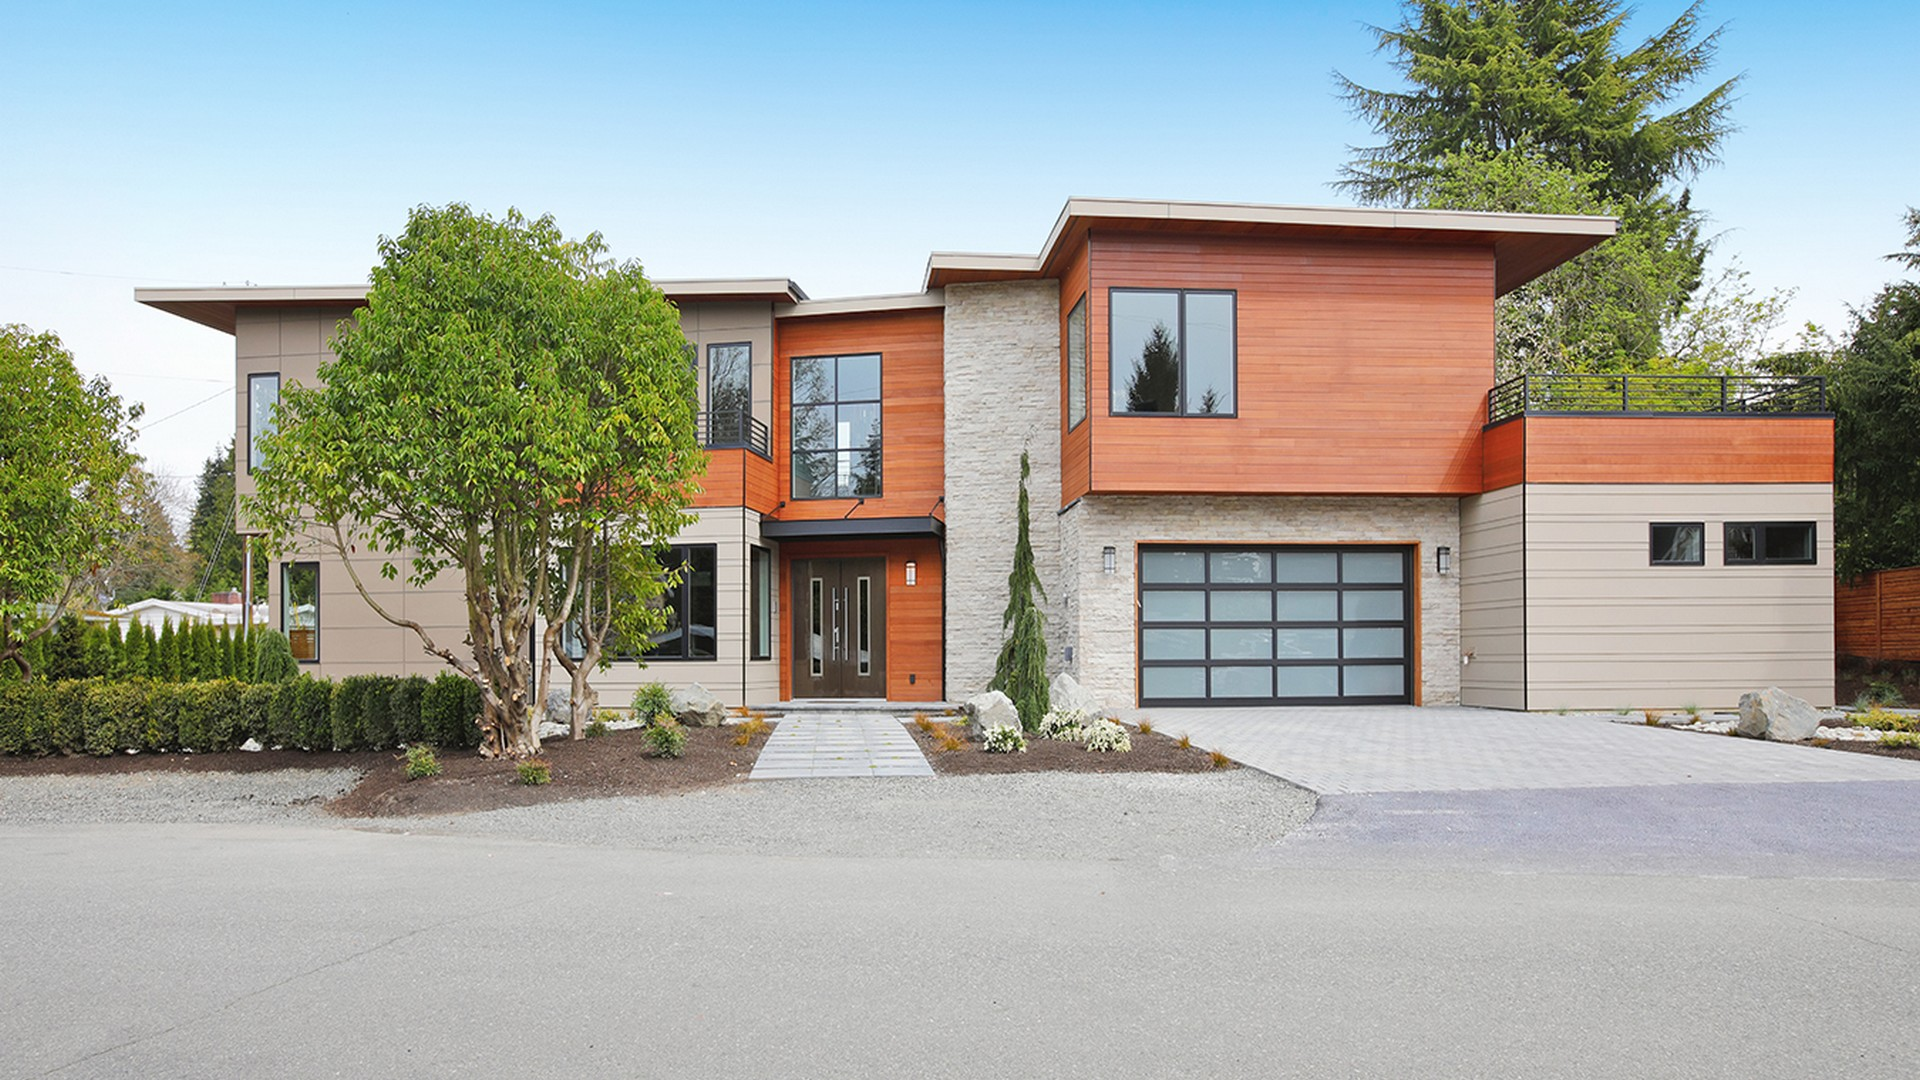 Single Family Home for Sale at Downtown 1288 106th Place NE Bellevue, Washington 98004 United States